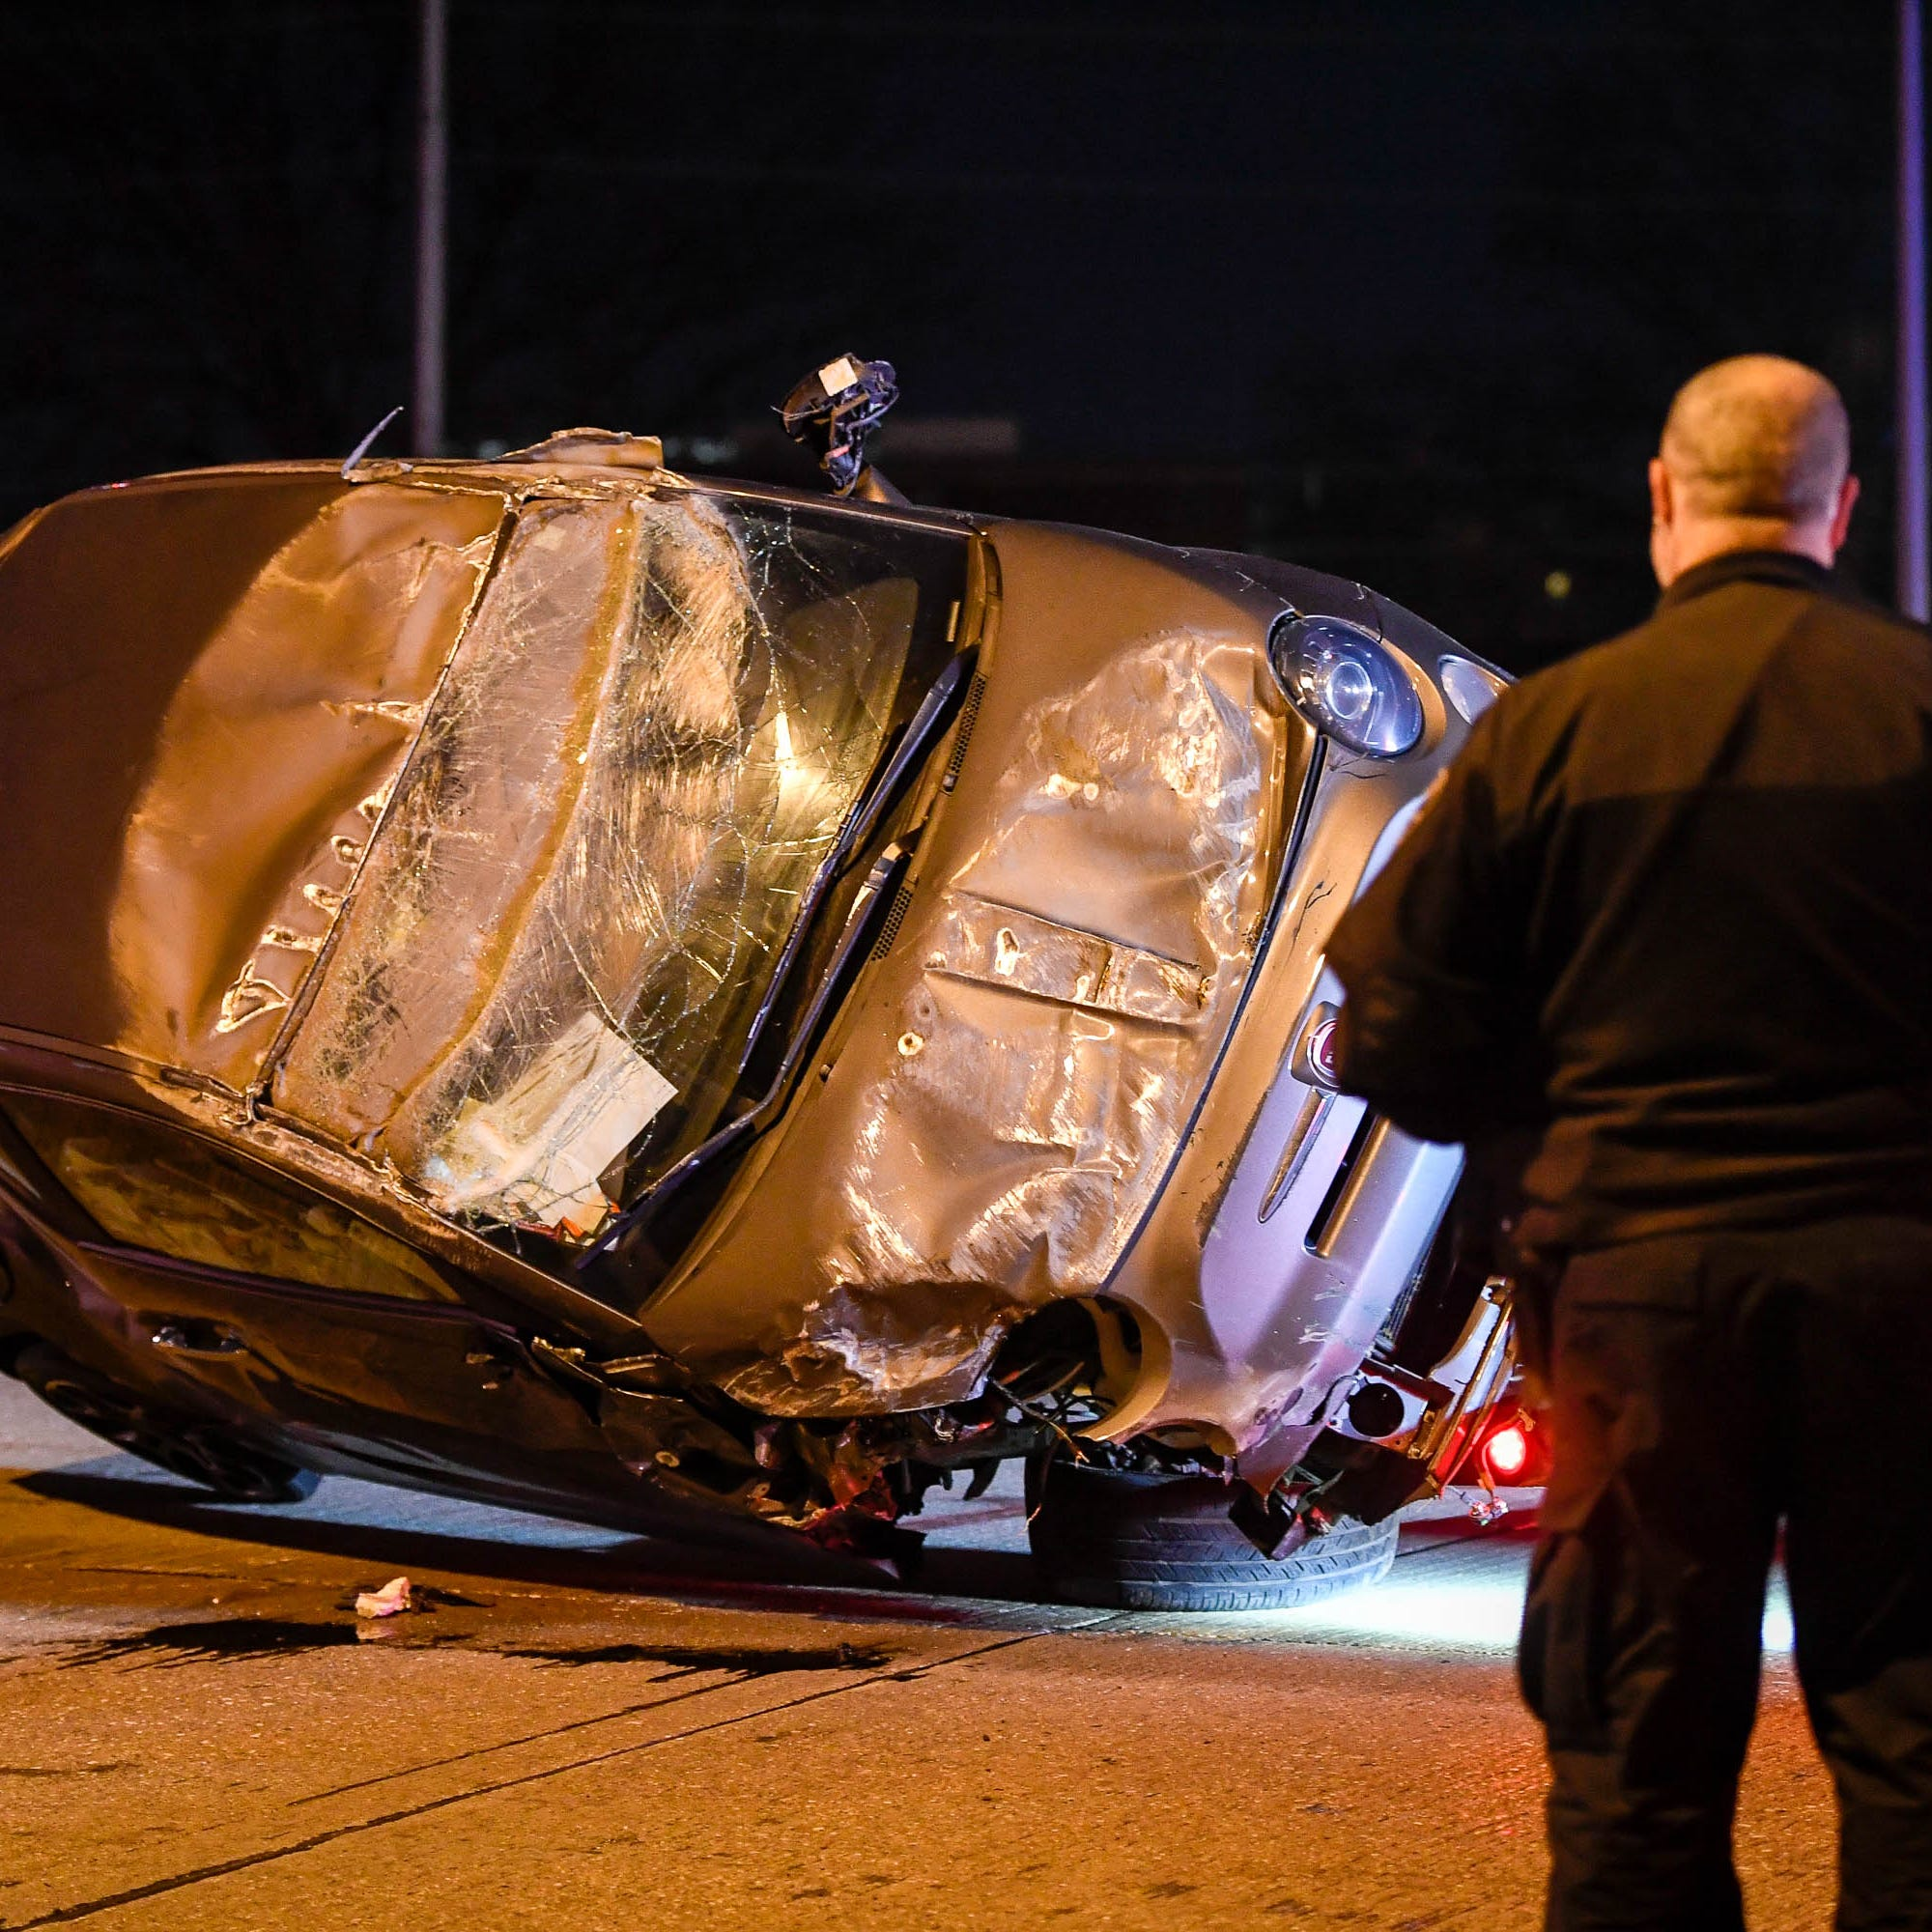 Lloyd Expressway reopened after crash